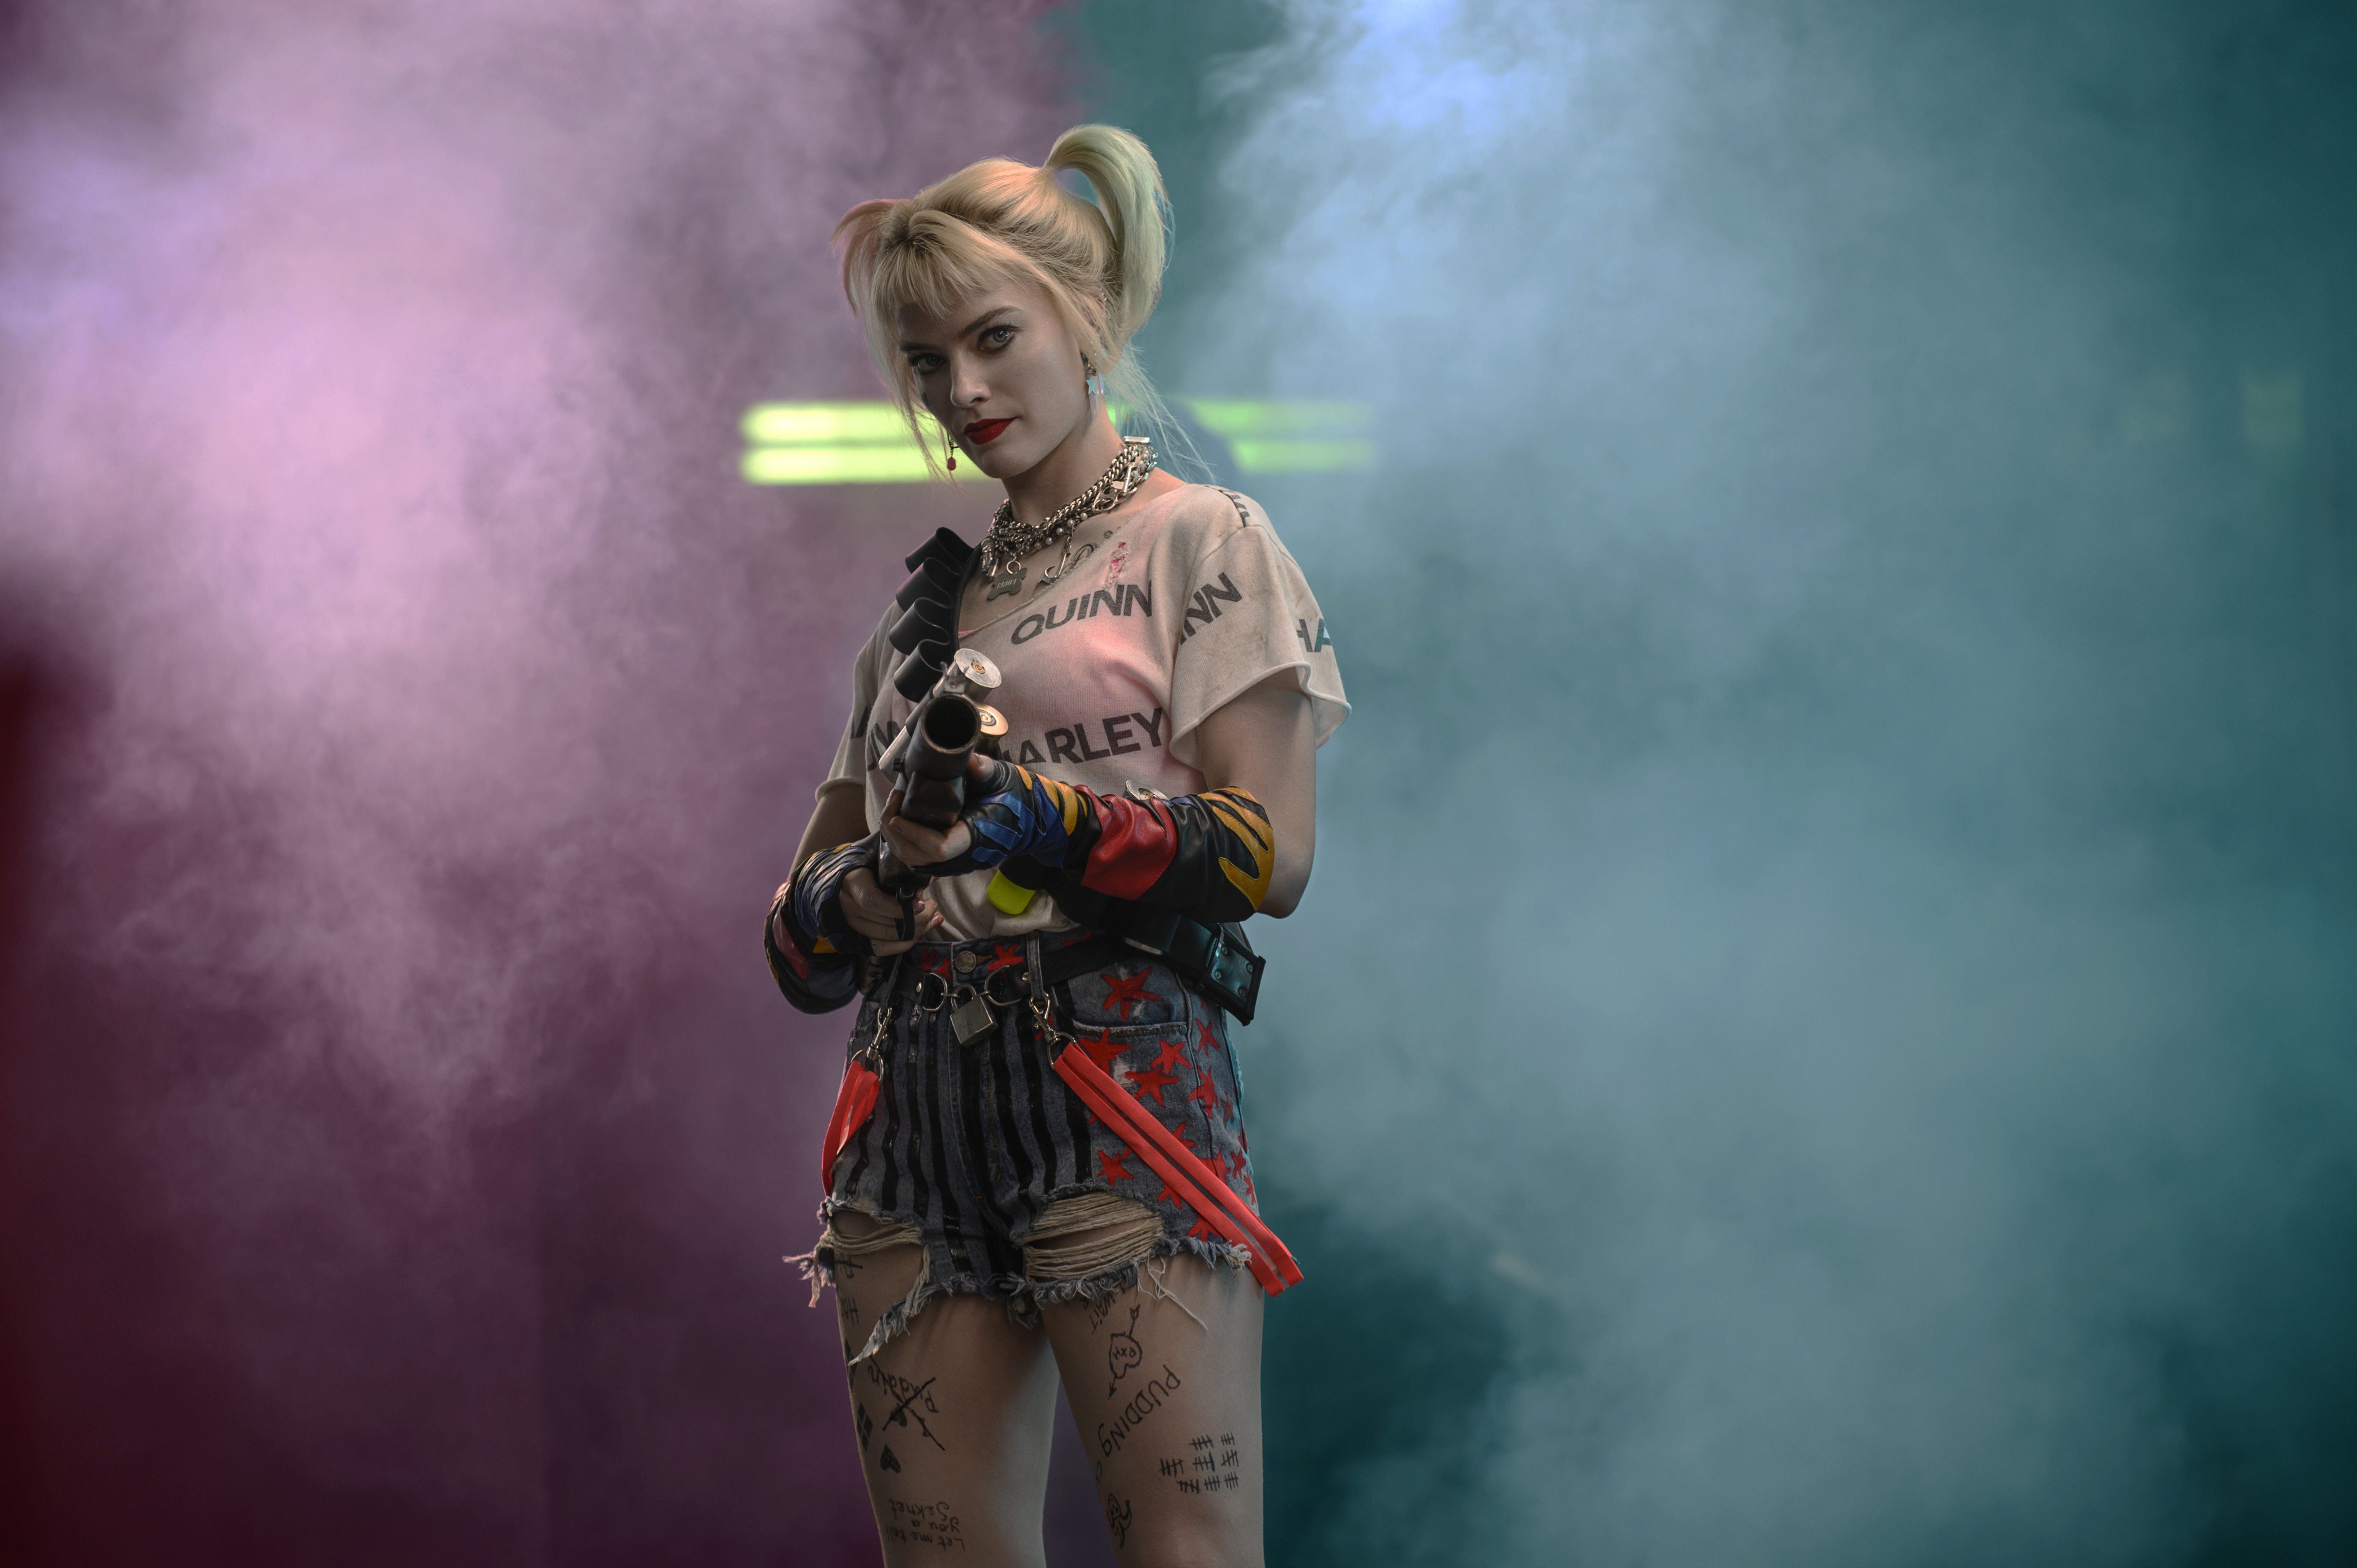 Margot Robbie delights as Harley Quinn